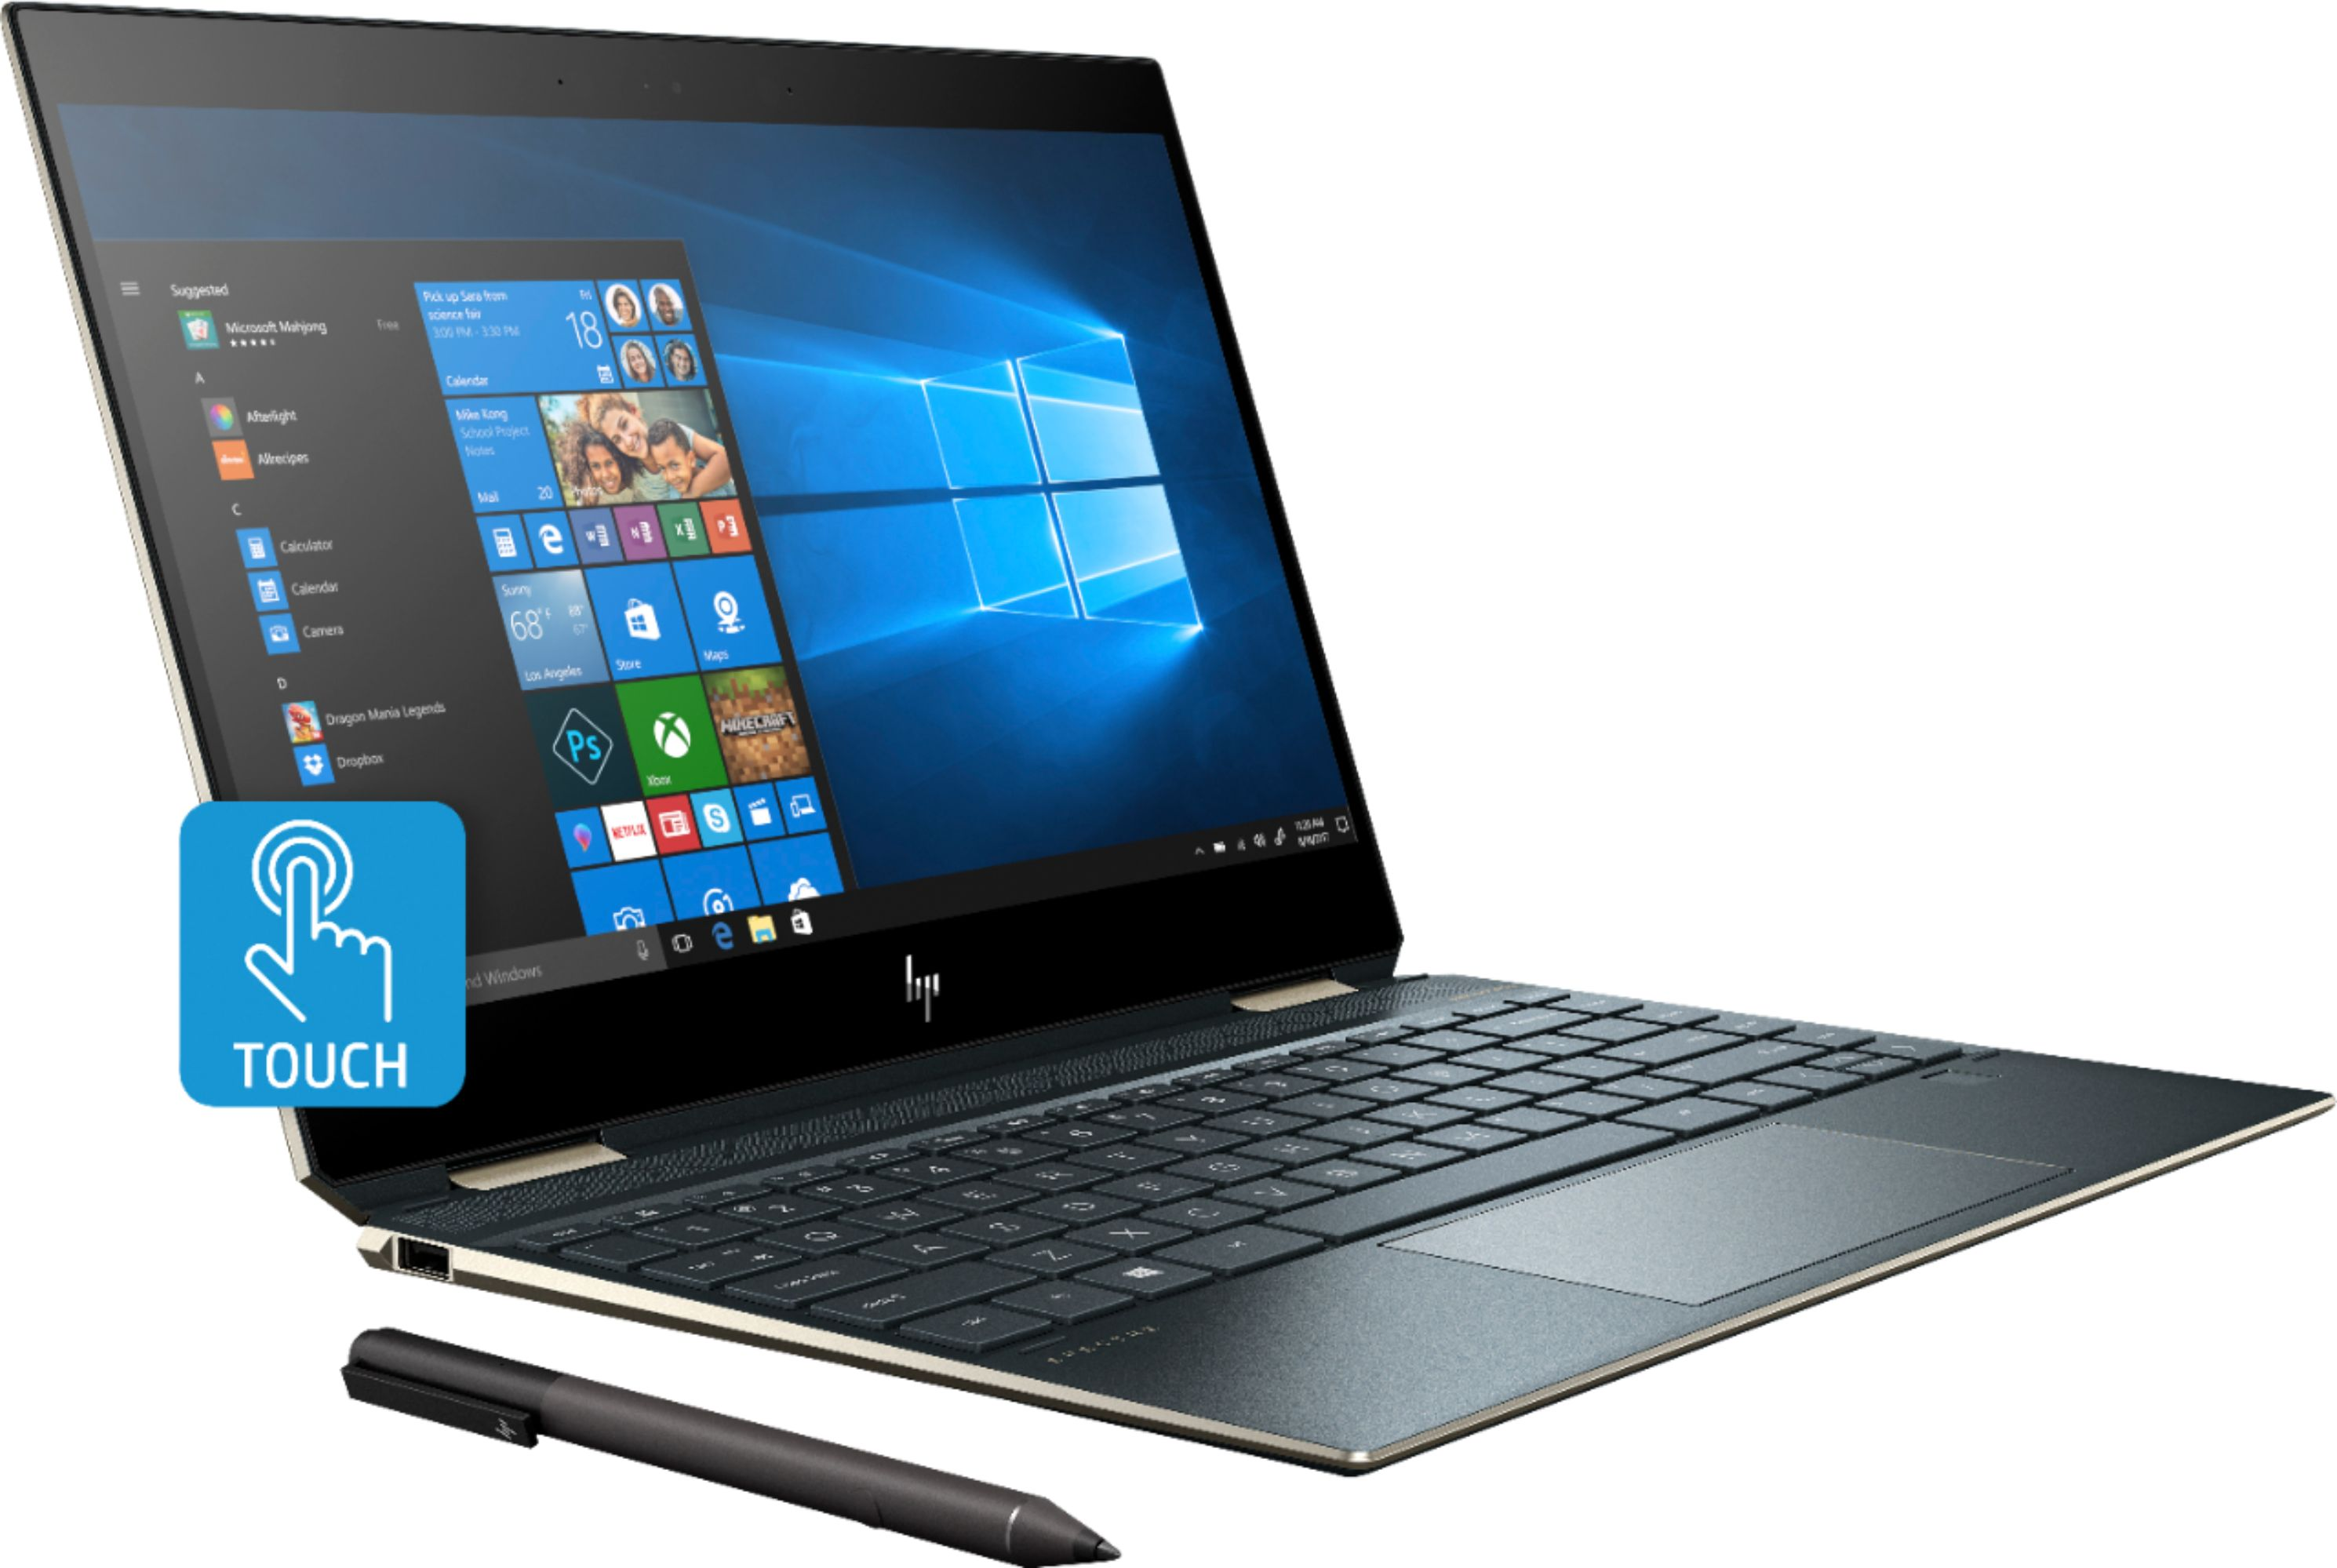 HP Spectre x360 touchpad not working